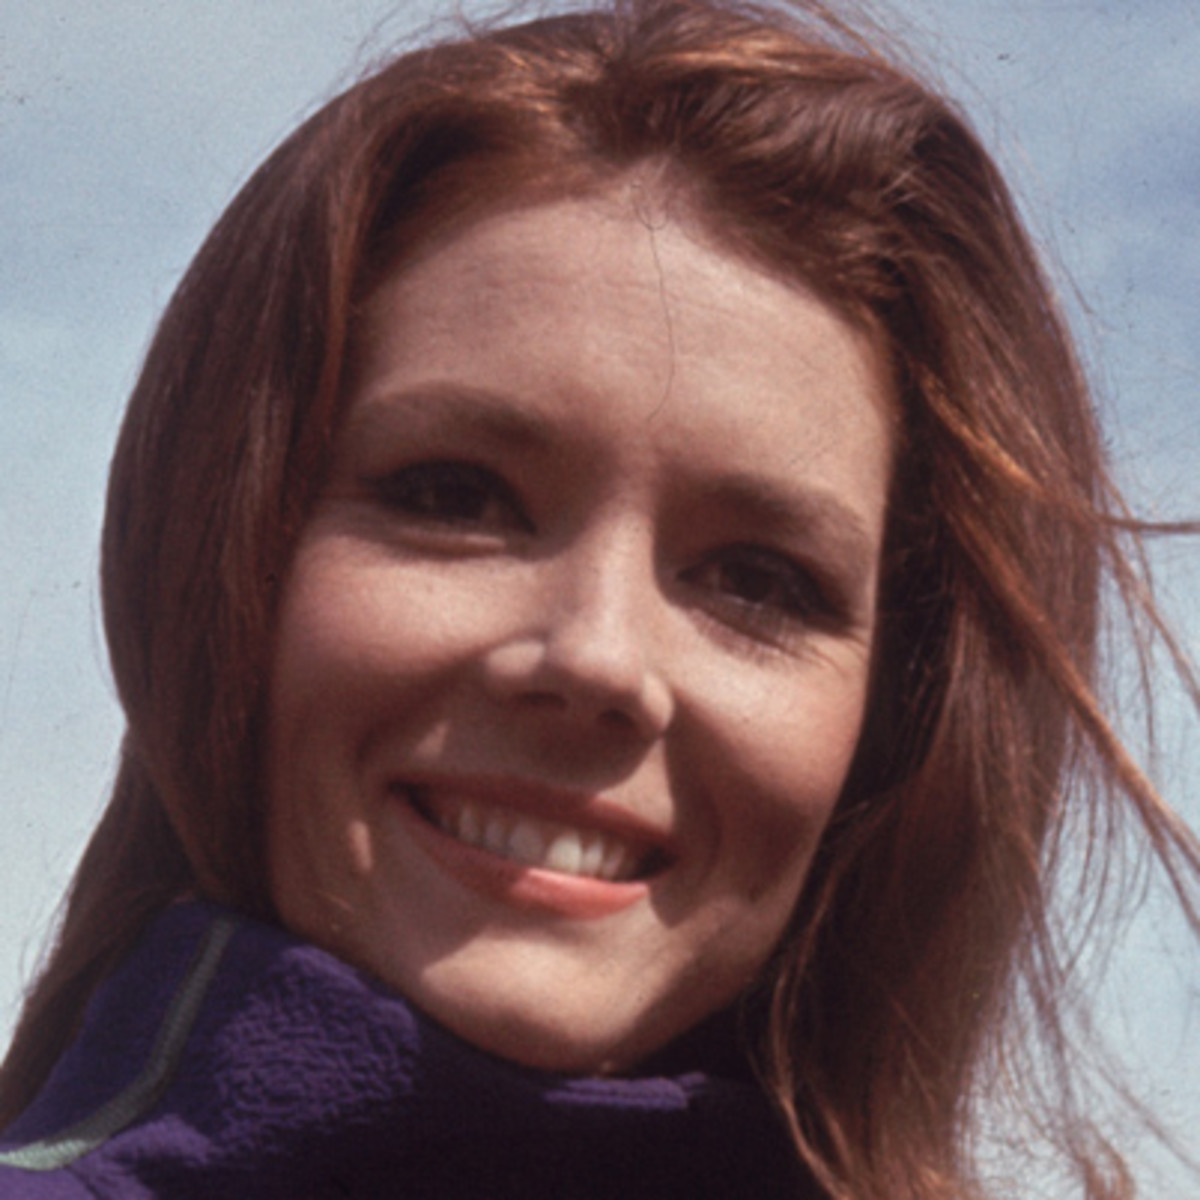 diana rigg bond moviediana rigg bond, diana rigg natalie dormer, diana rigg avengers, diana rigg game of thrones, diana rigg foto, diana rigg films, diana rigg fight scenes, diana rigg dance, diana rigg movies, diana rigg wiki, diana rigg height, diana rigg young, diana rigg bond movie, diana rigg doctor who, diana rigg instagram, diana rigg joely richardson, diana rigg telly savalas, diana rigg oliver reed, diana rigg photos, diana rigg daughter